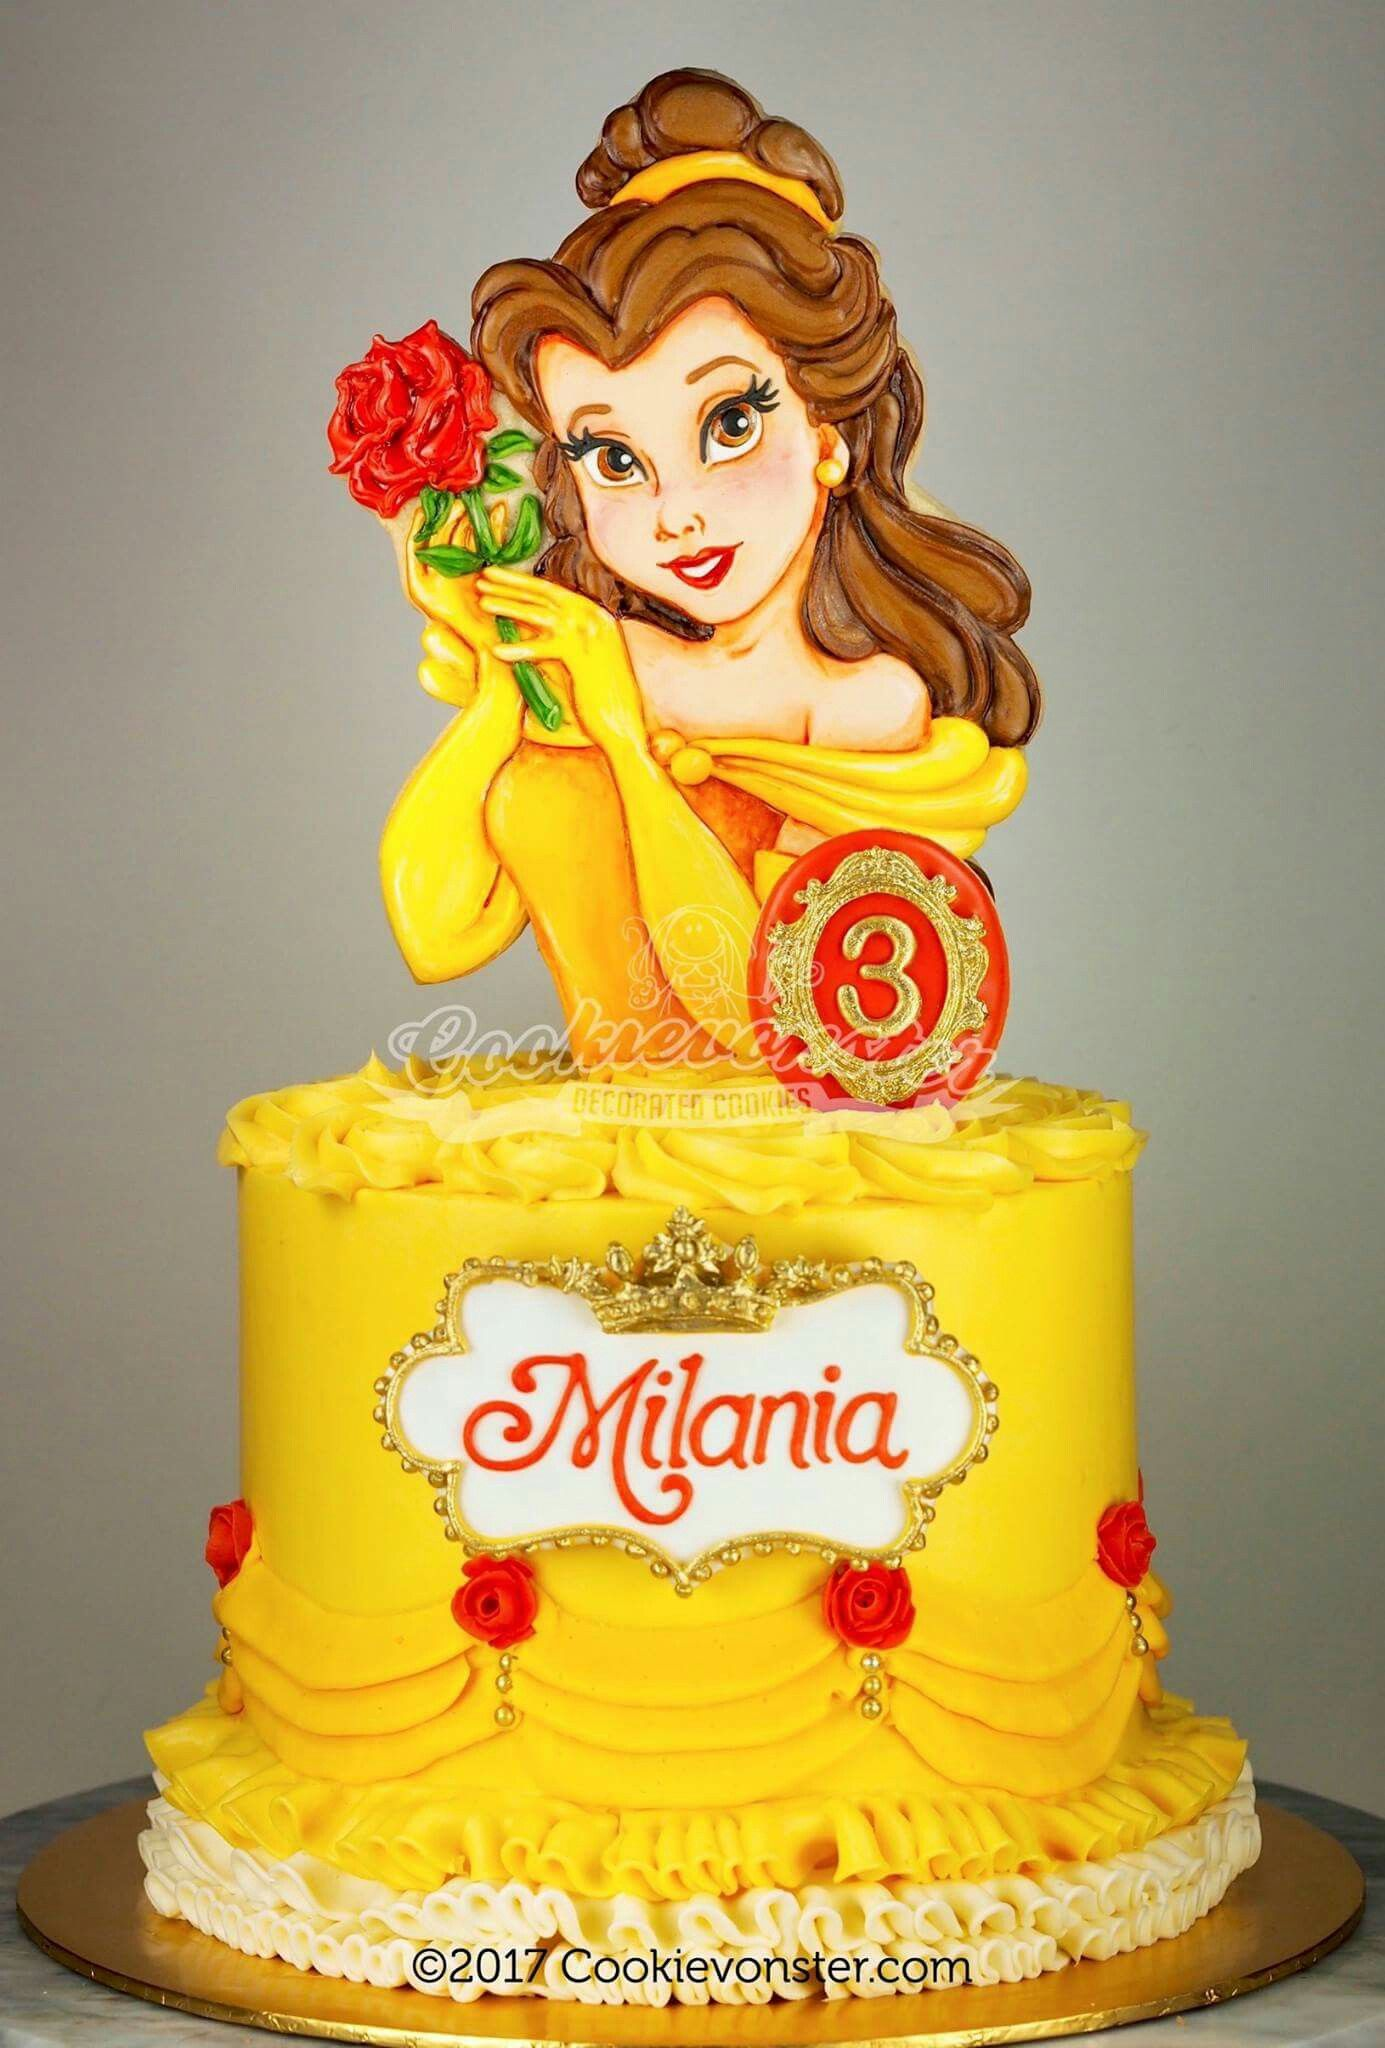 Belle Beauty and the Beast Cake Princess Cakes Cupcakes and